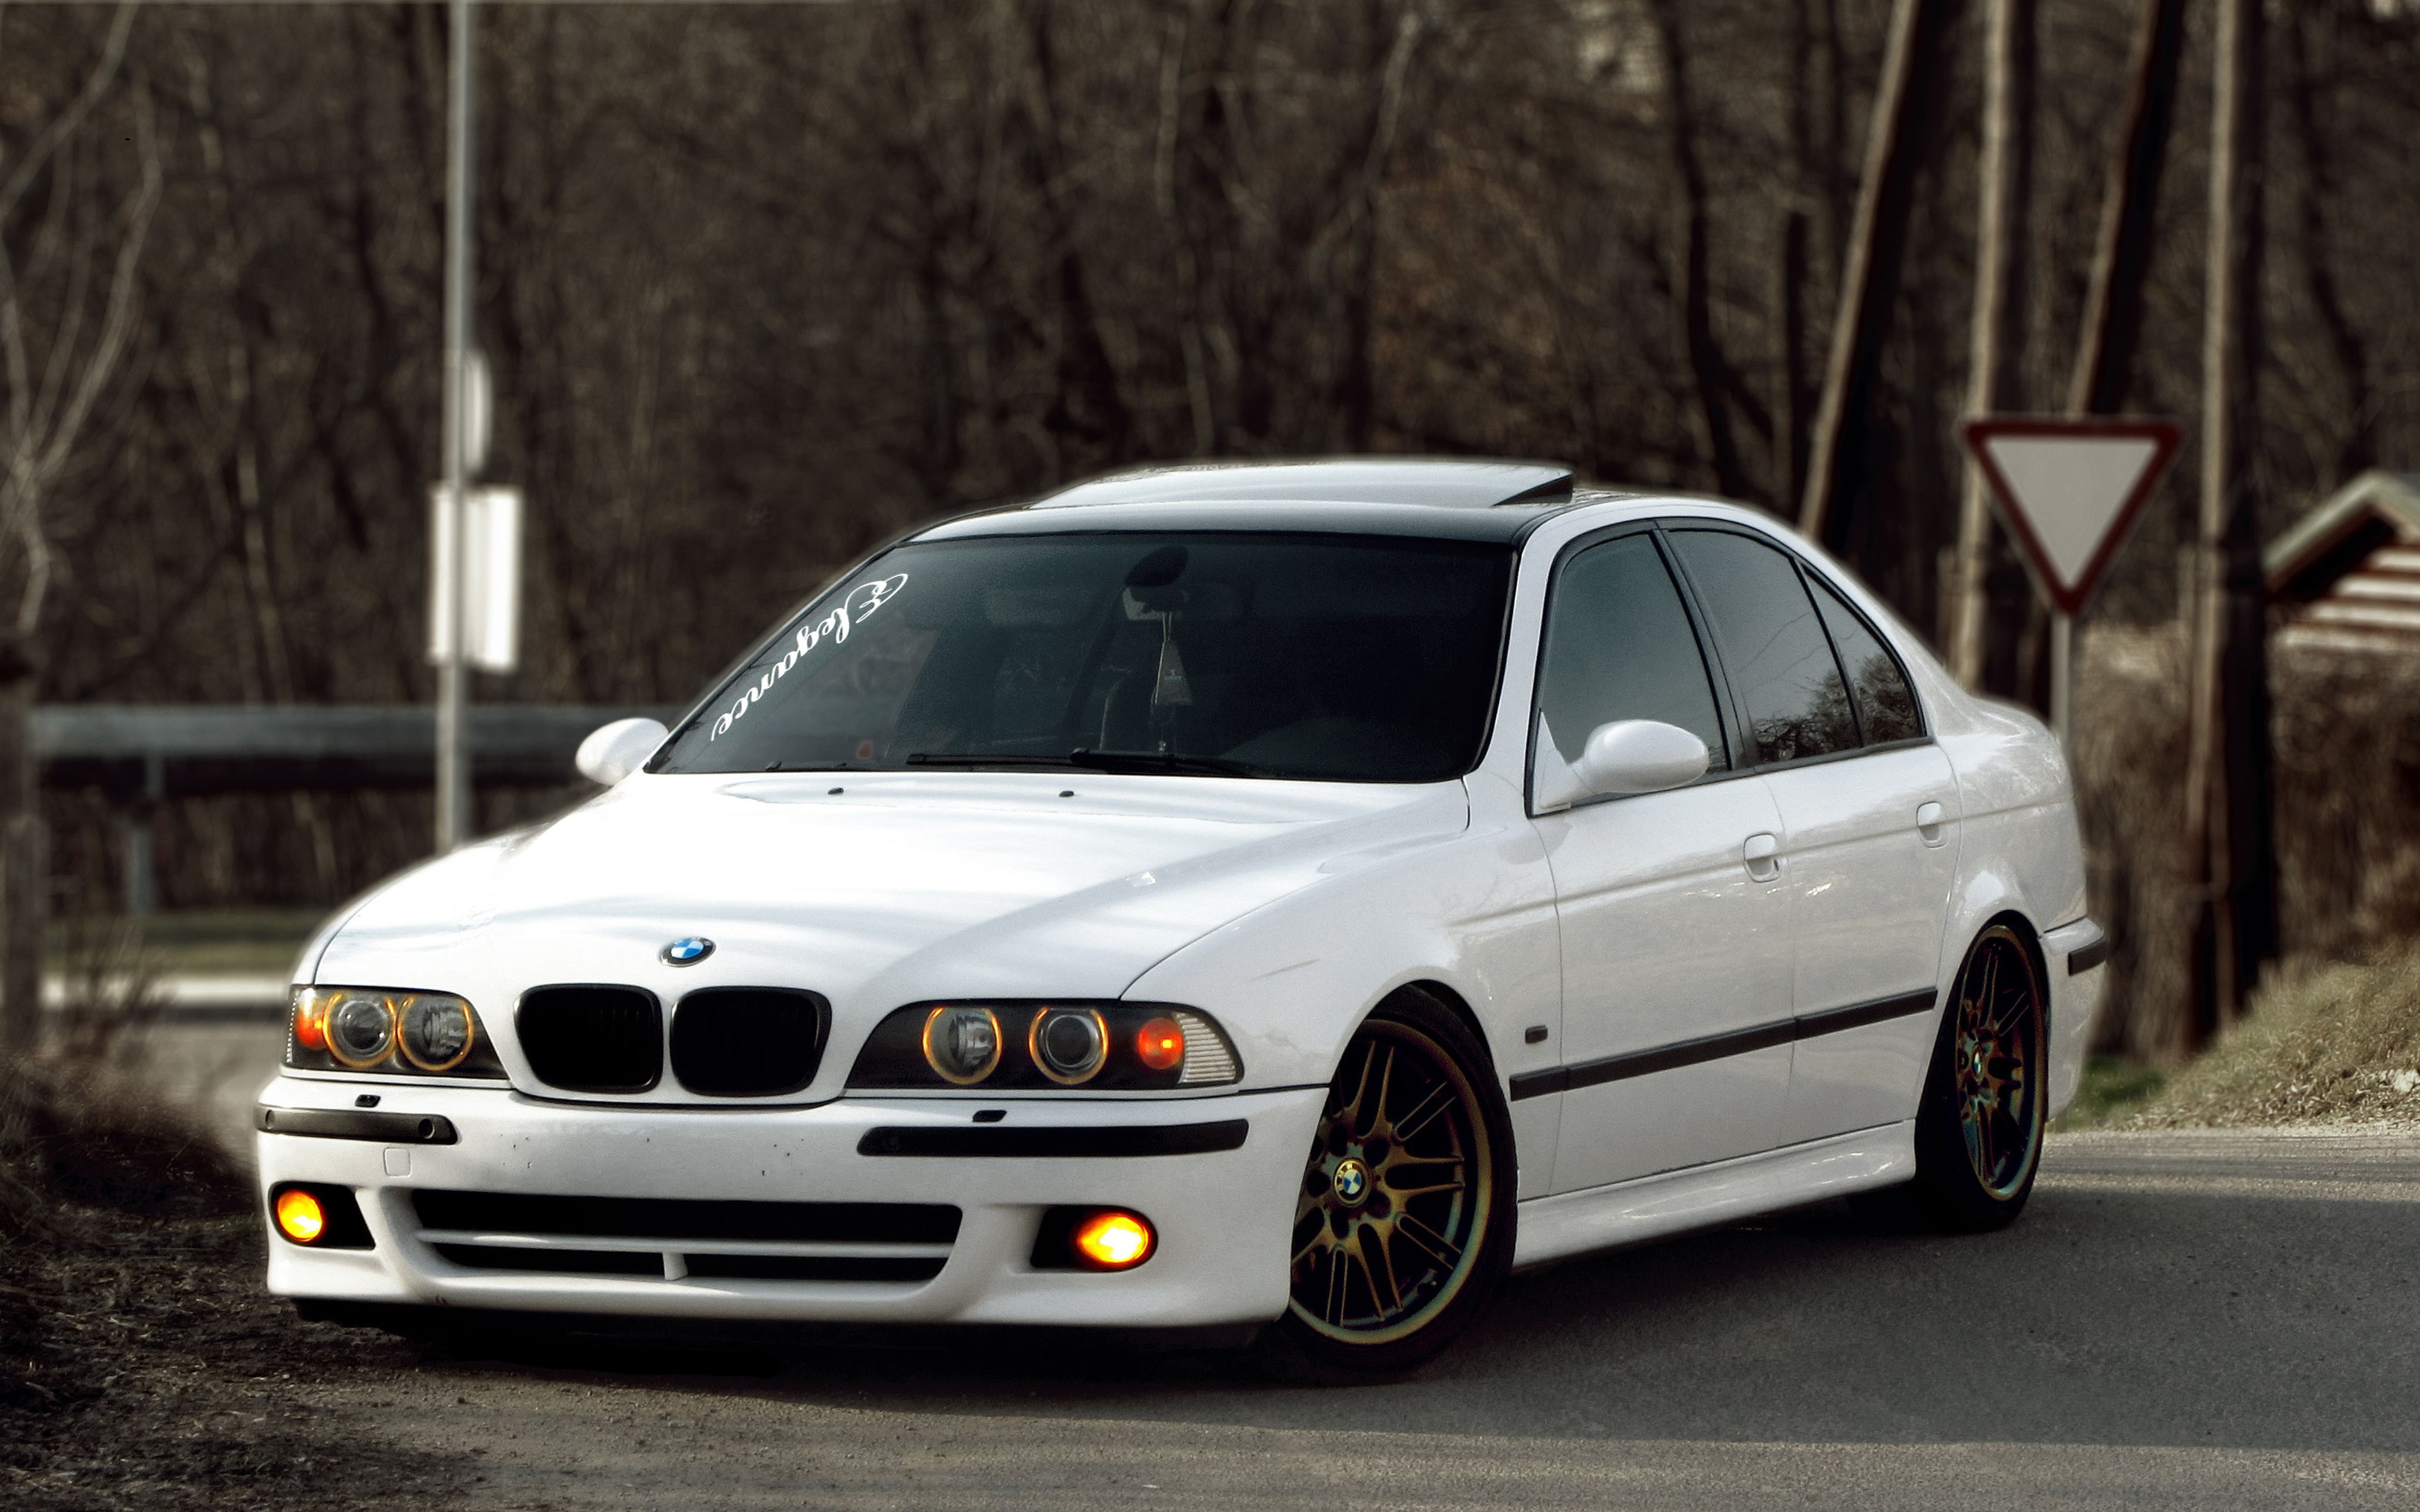 Bmw M5 4k E39 Tuning Stance White M5 German Cars Bmw